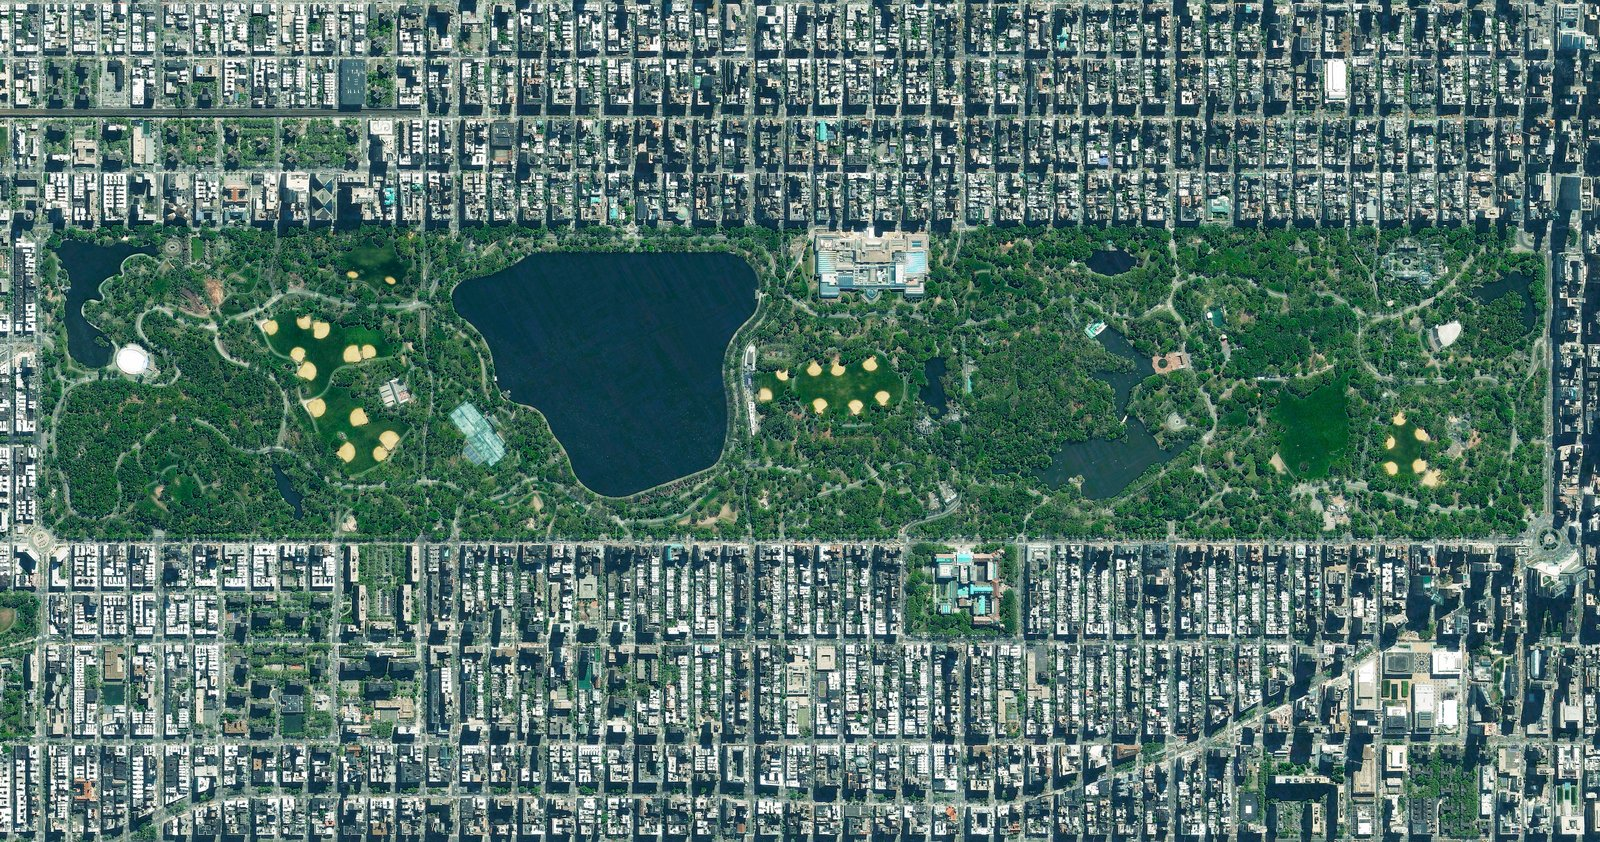 Neatly delineated into as grid of streets, Manhattan's Central Park appears to comprise more than its actual footprint of just 6% of the island borough. Reprinted with permission from Overview by Benjamin Grant, copyright (c) 2016. Published by Amphoto Books, a division of Penguin Random House, Inc.   Images (c) 2016 by DigitalGlobe, Inc.   Ever Wondered About the View from Space? by Aileen Kwun